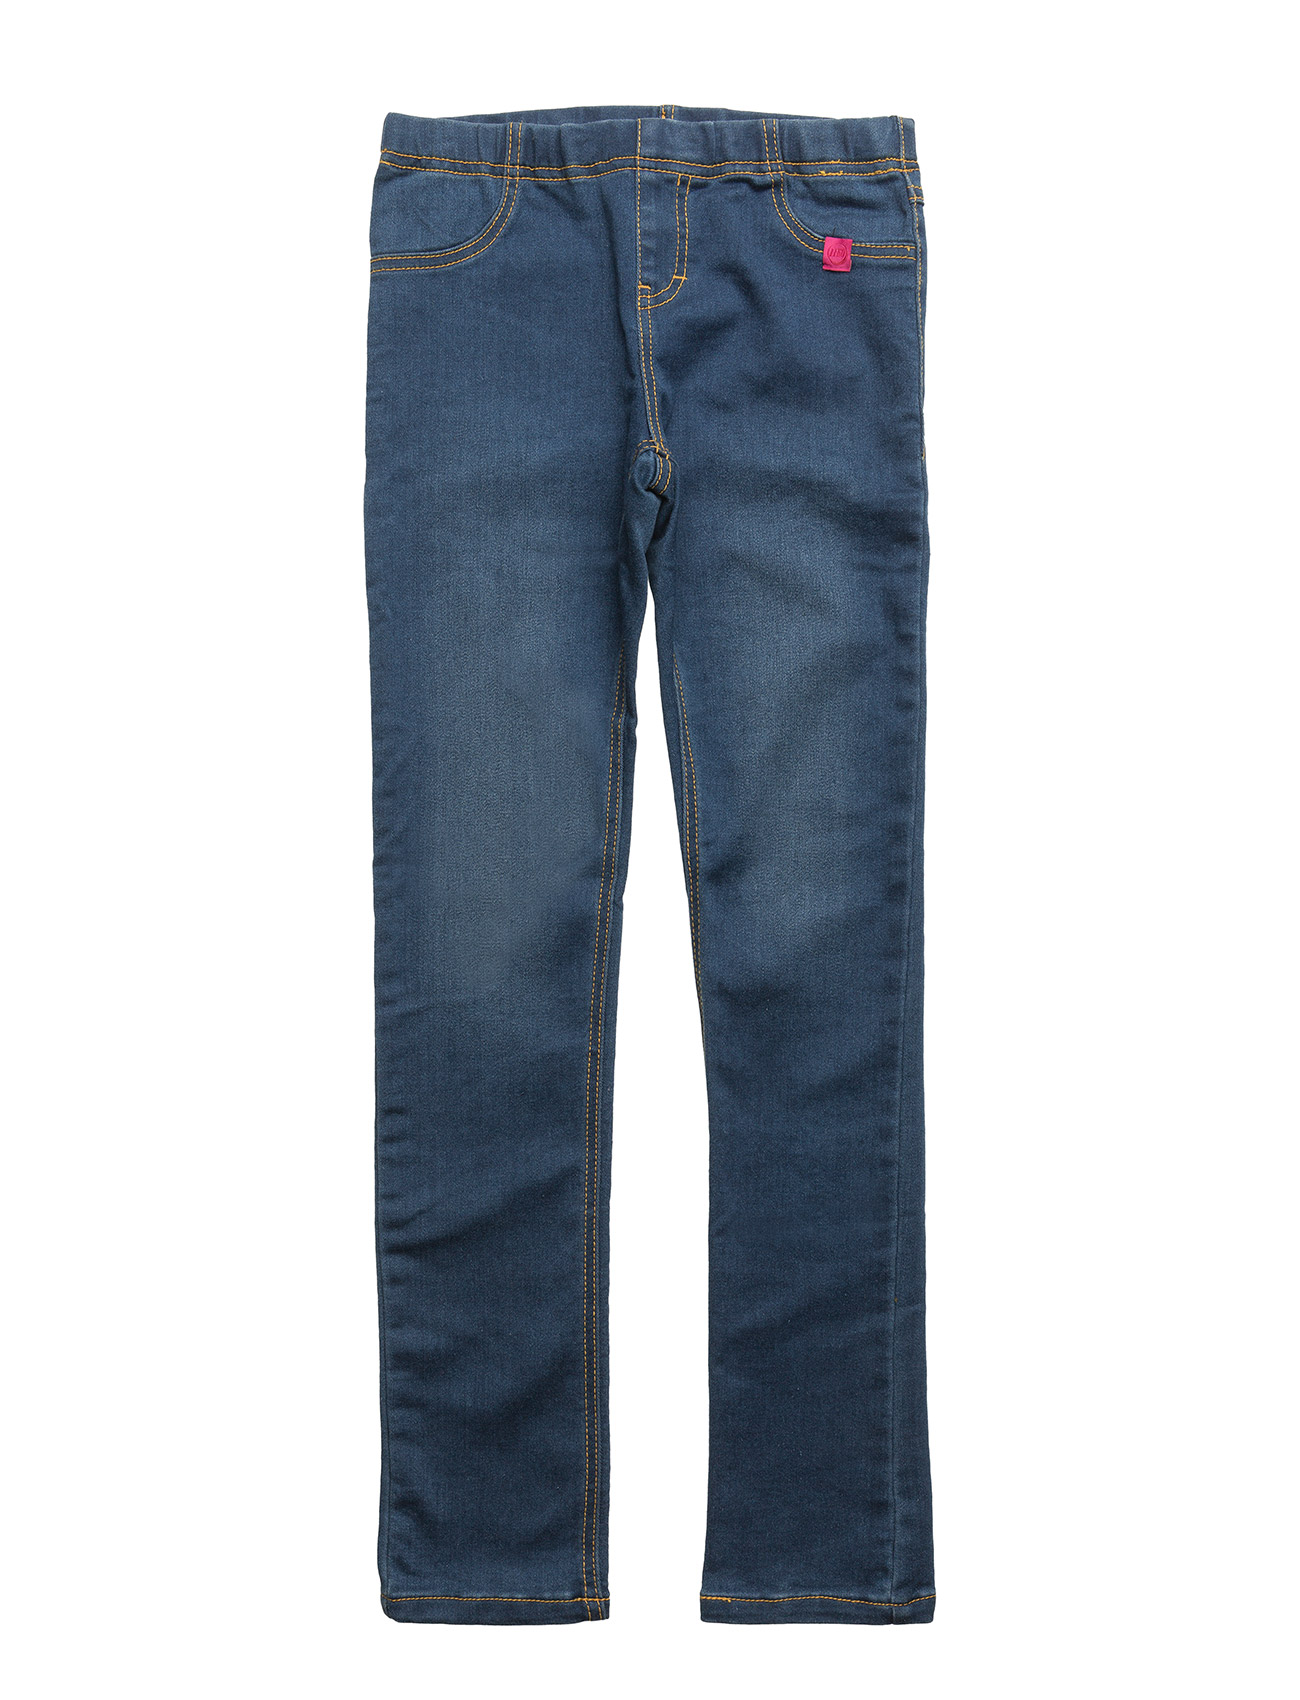 lego wear Invent 501 - jeans fra boozt.com dk